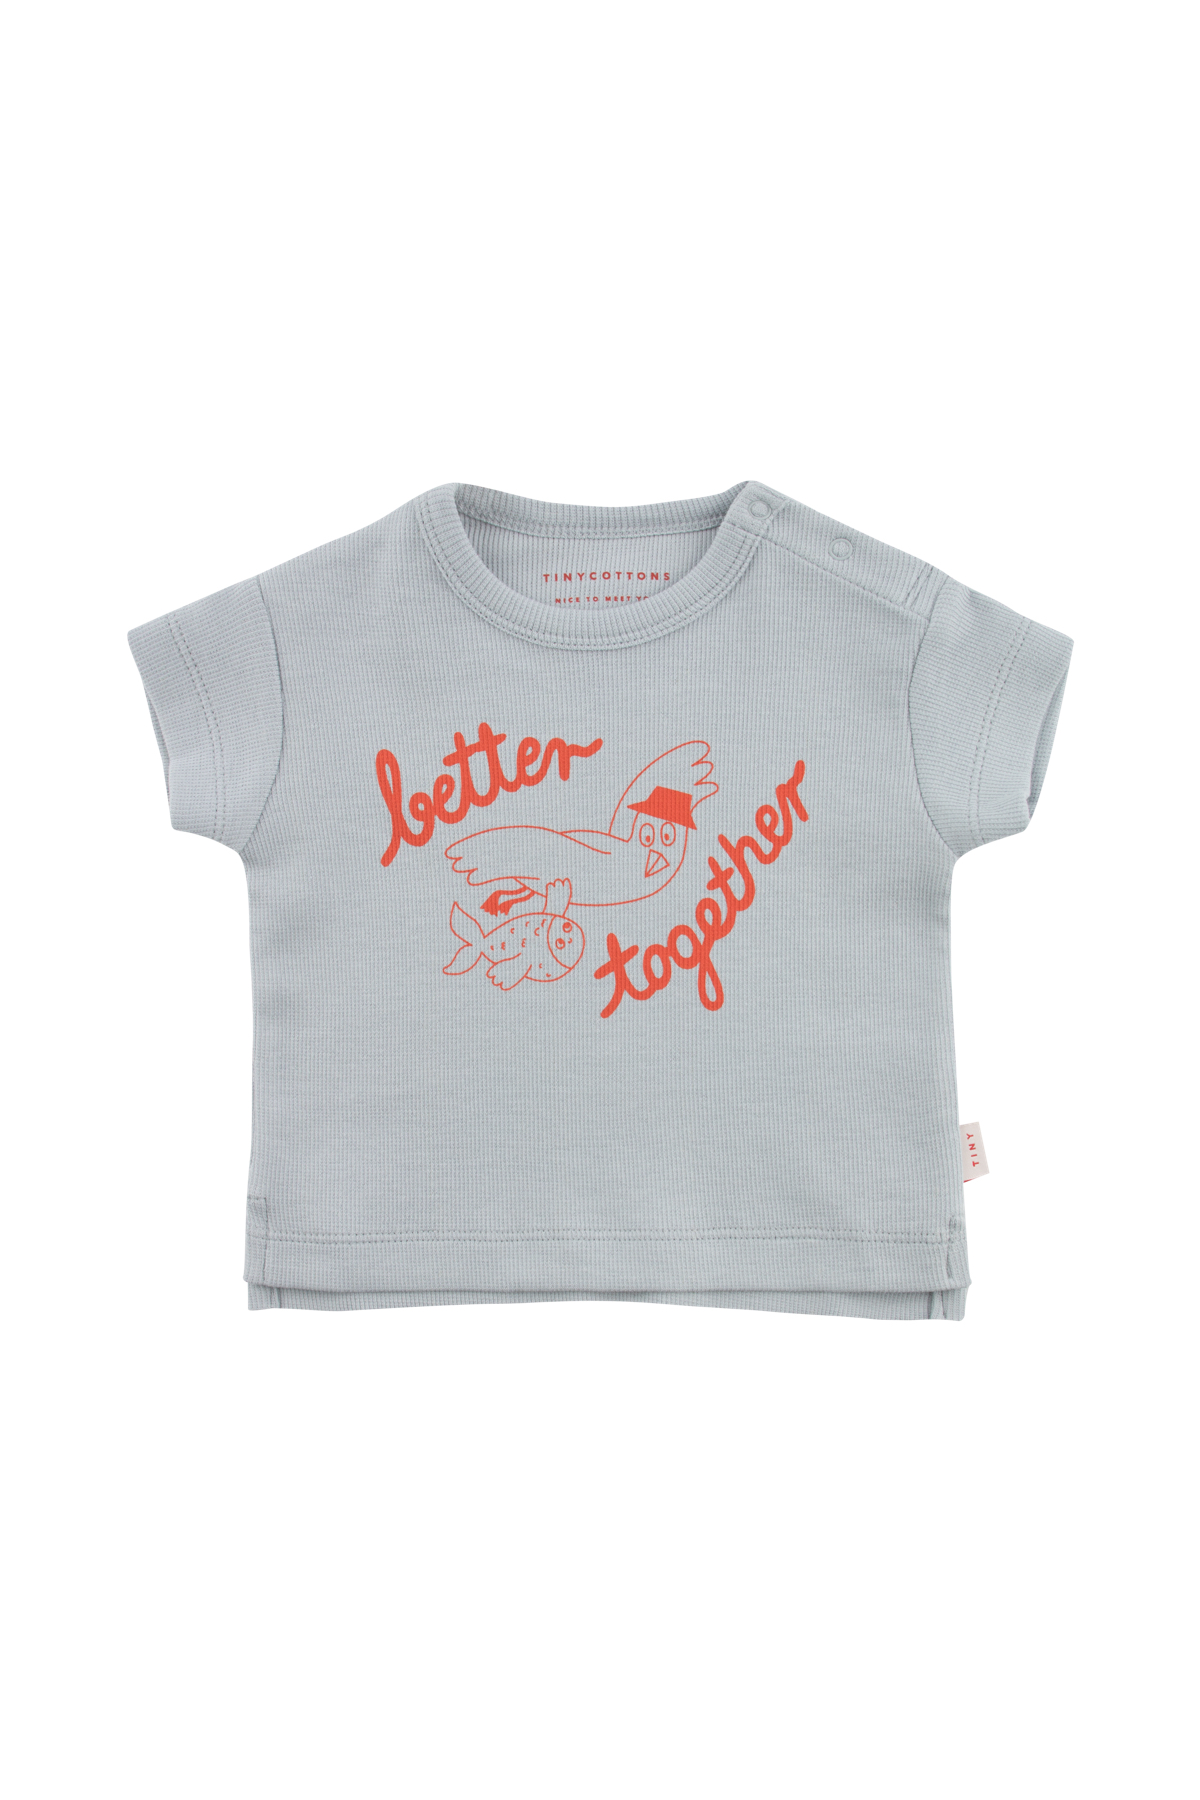 tinycottons better together baby tee pale grey red